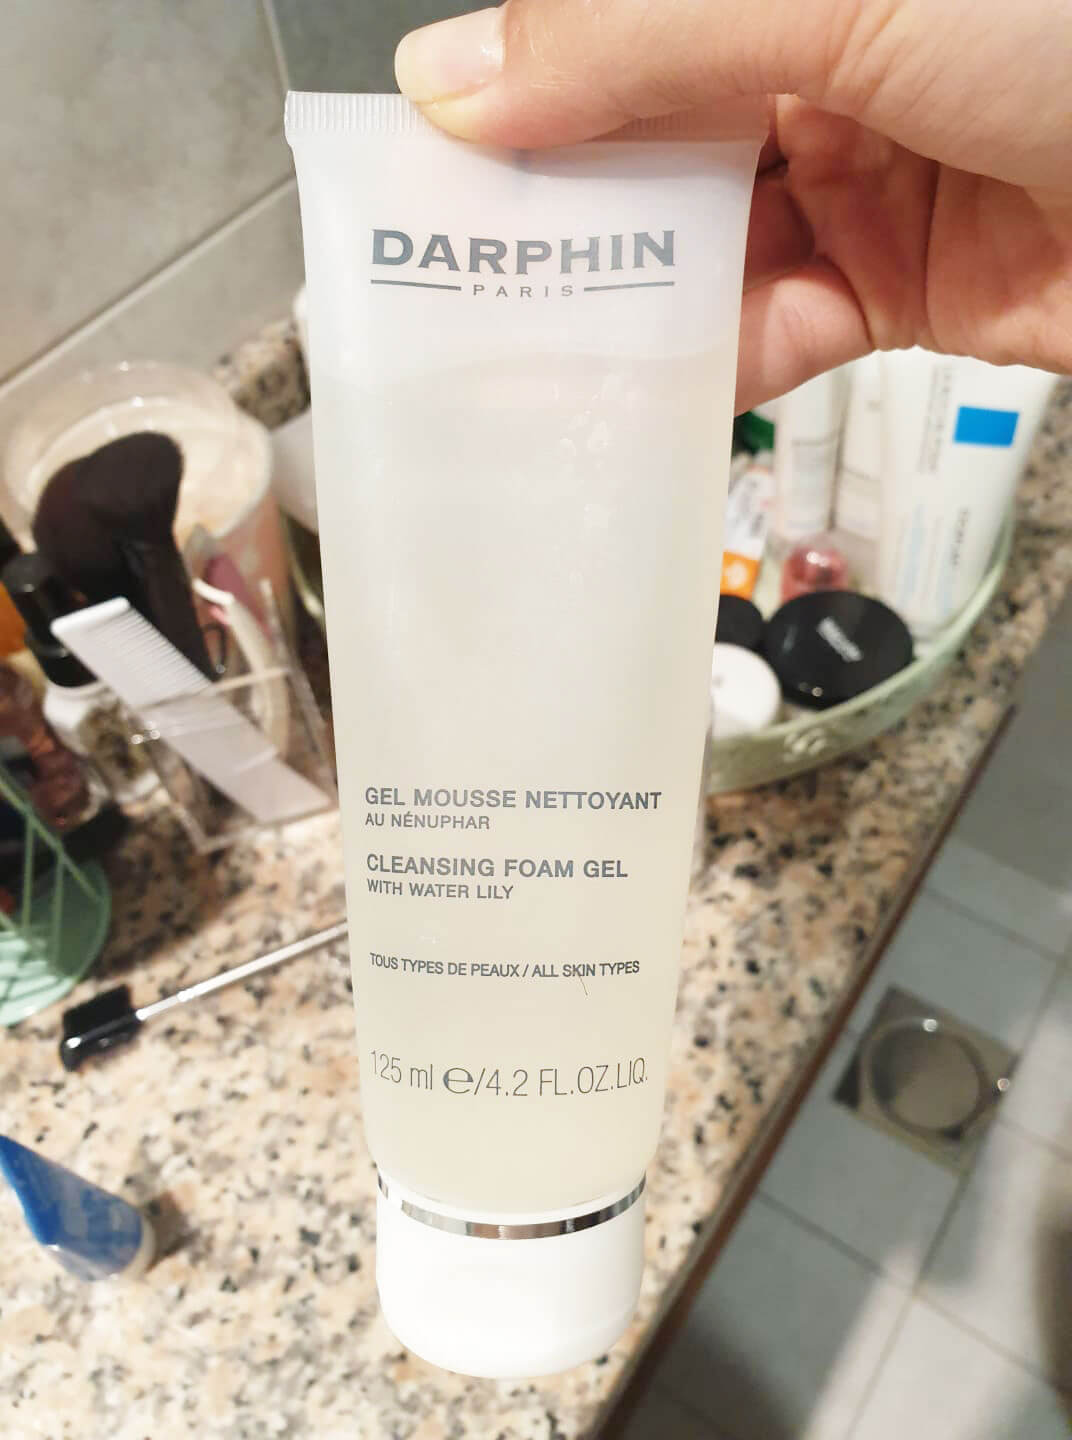 Darphin Cleansing Foam Gel